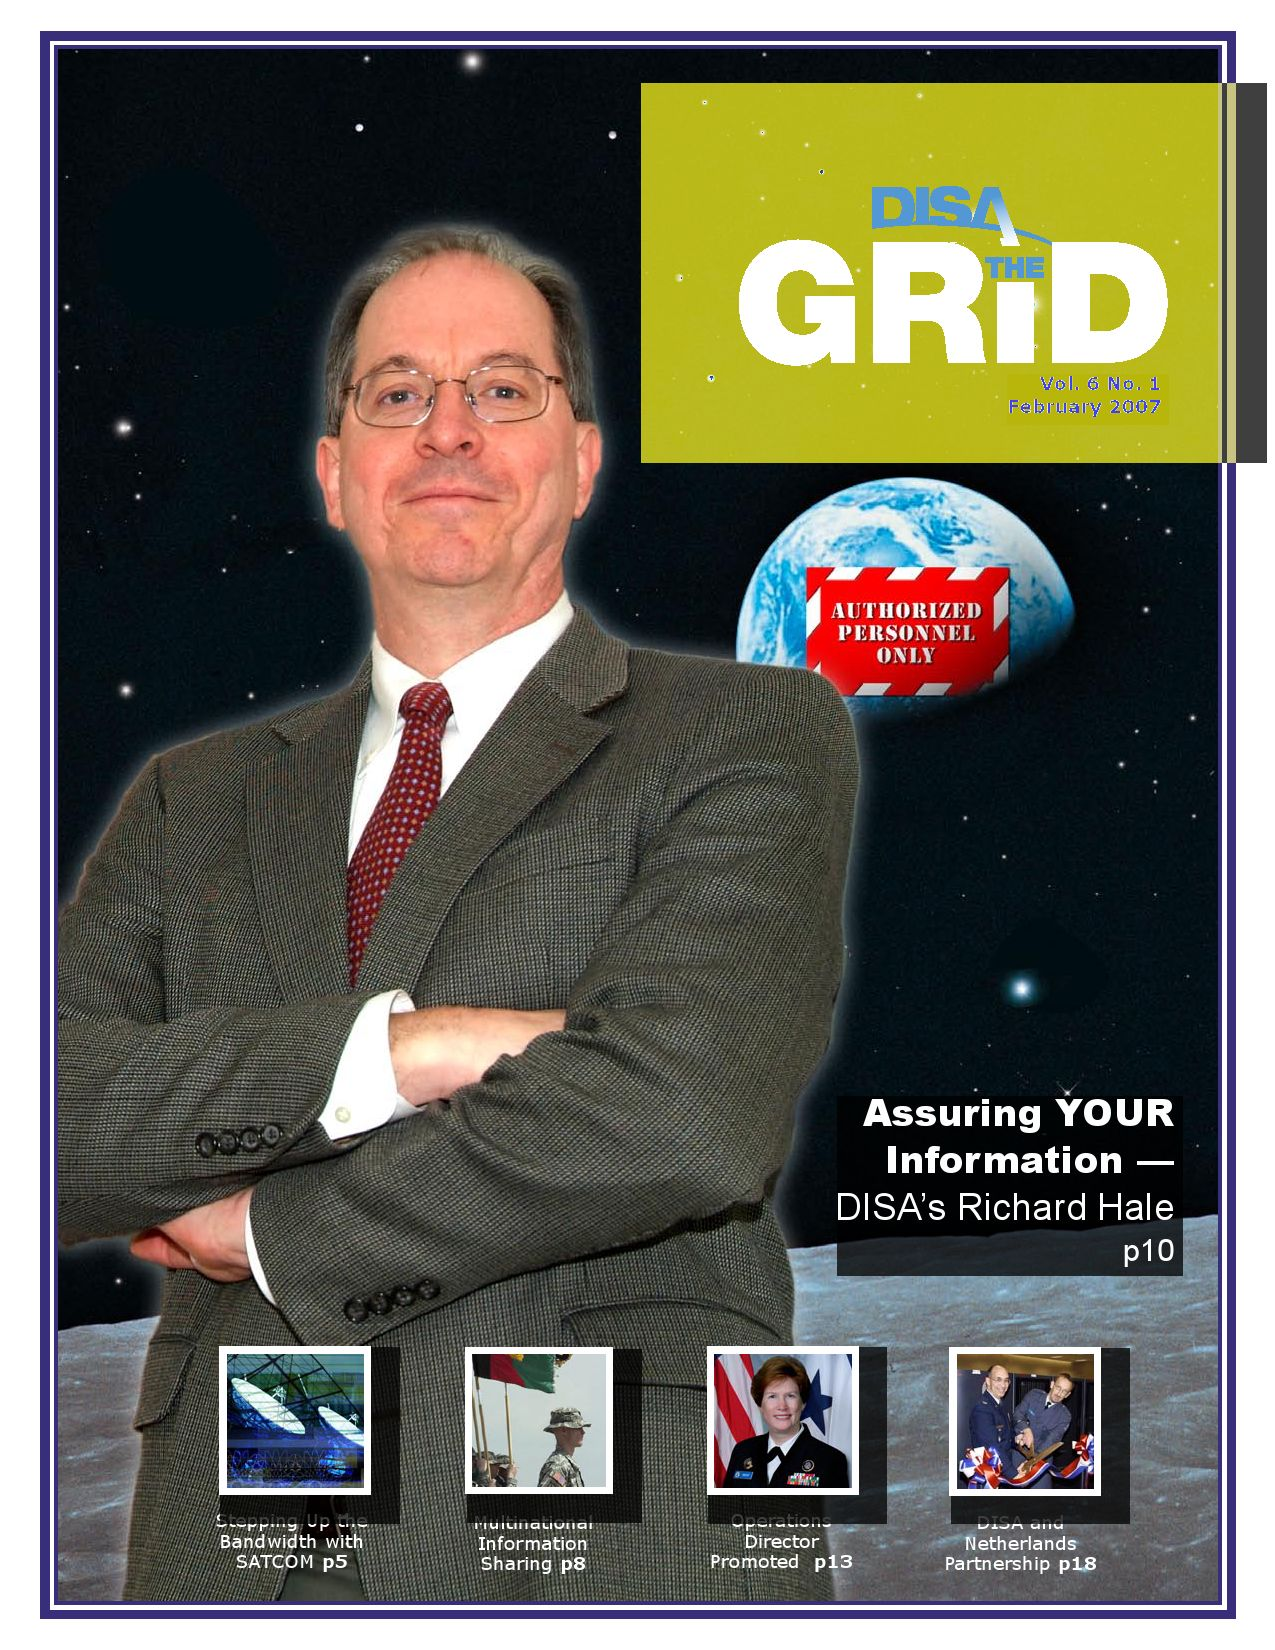 The Grid by j schiavoni - issuu